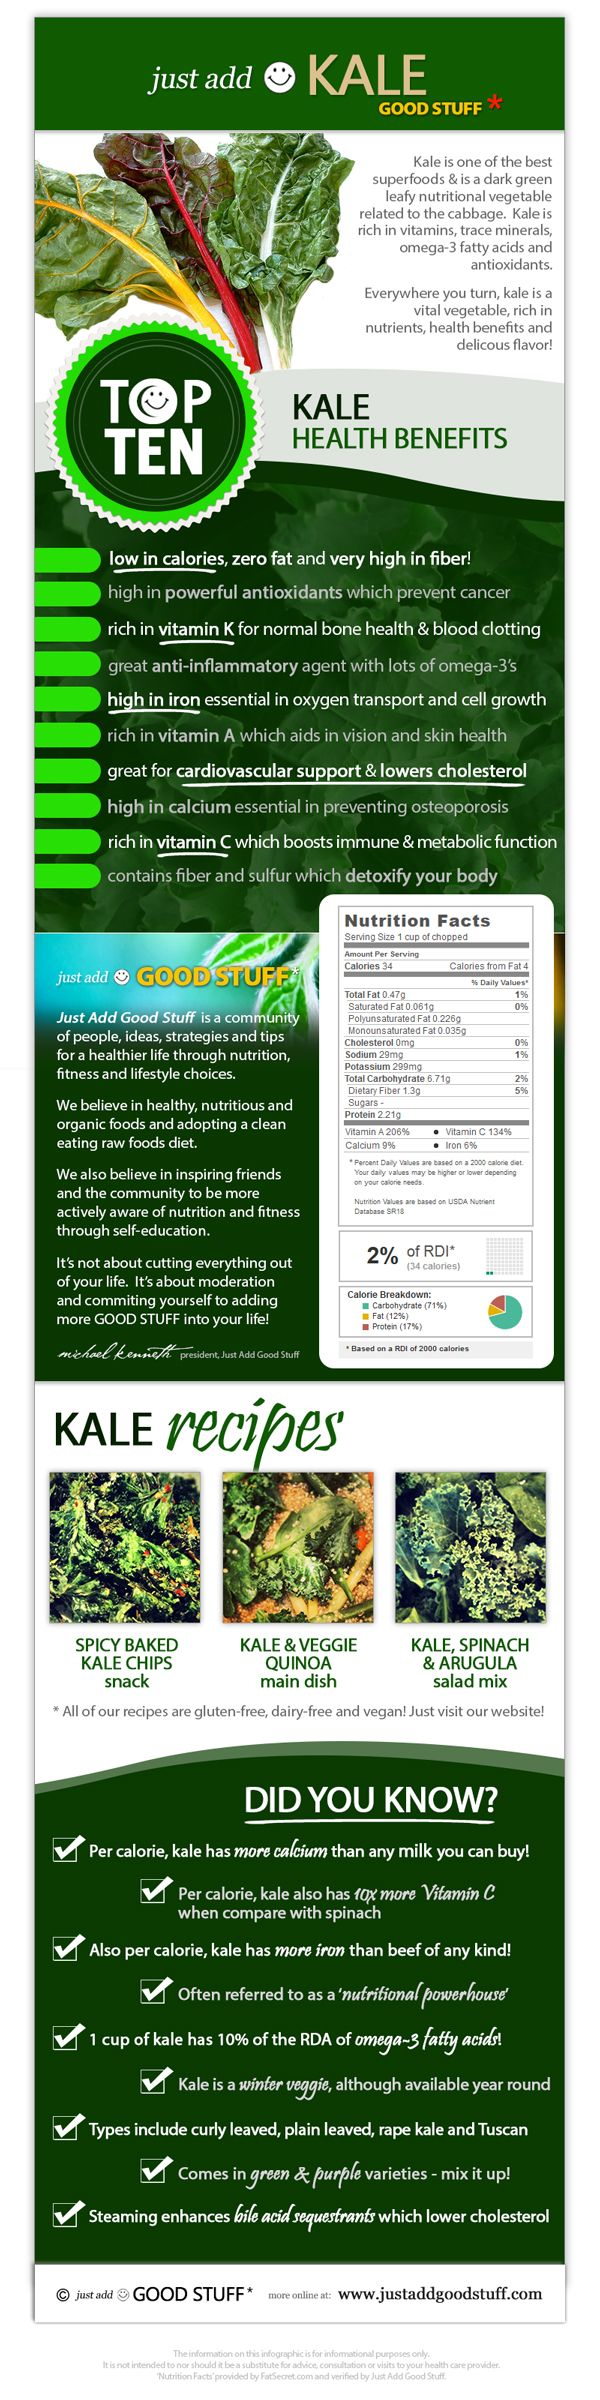 Just Add Good Stuff Kale Infographic detailing the health benefits in a visual way